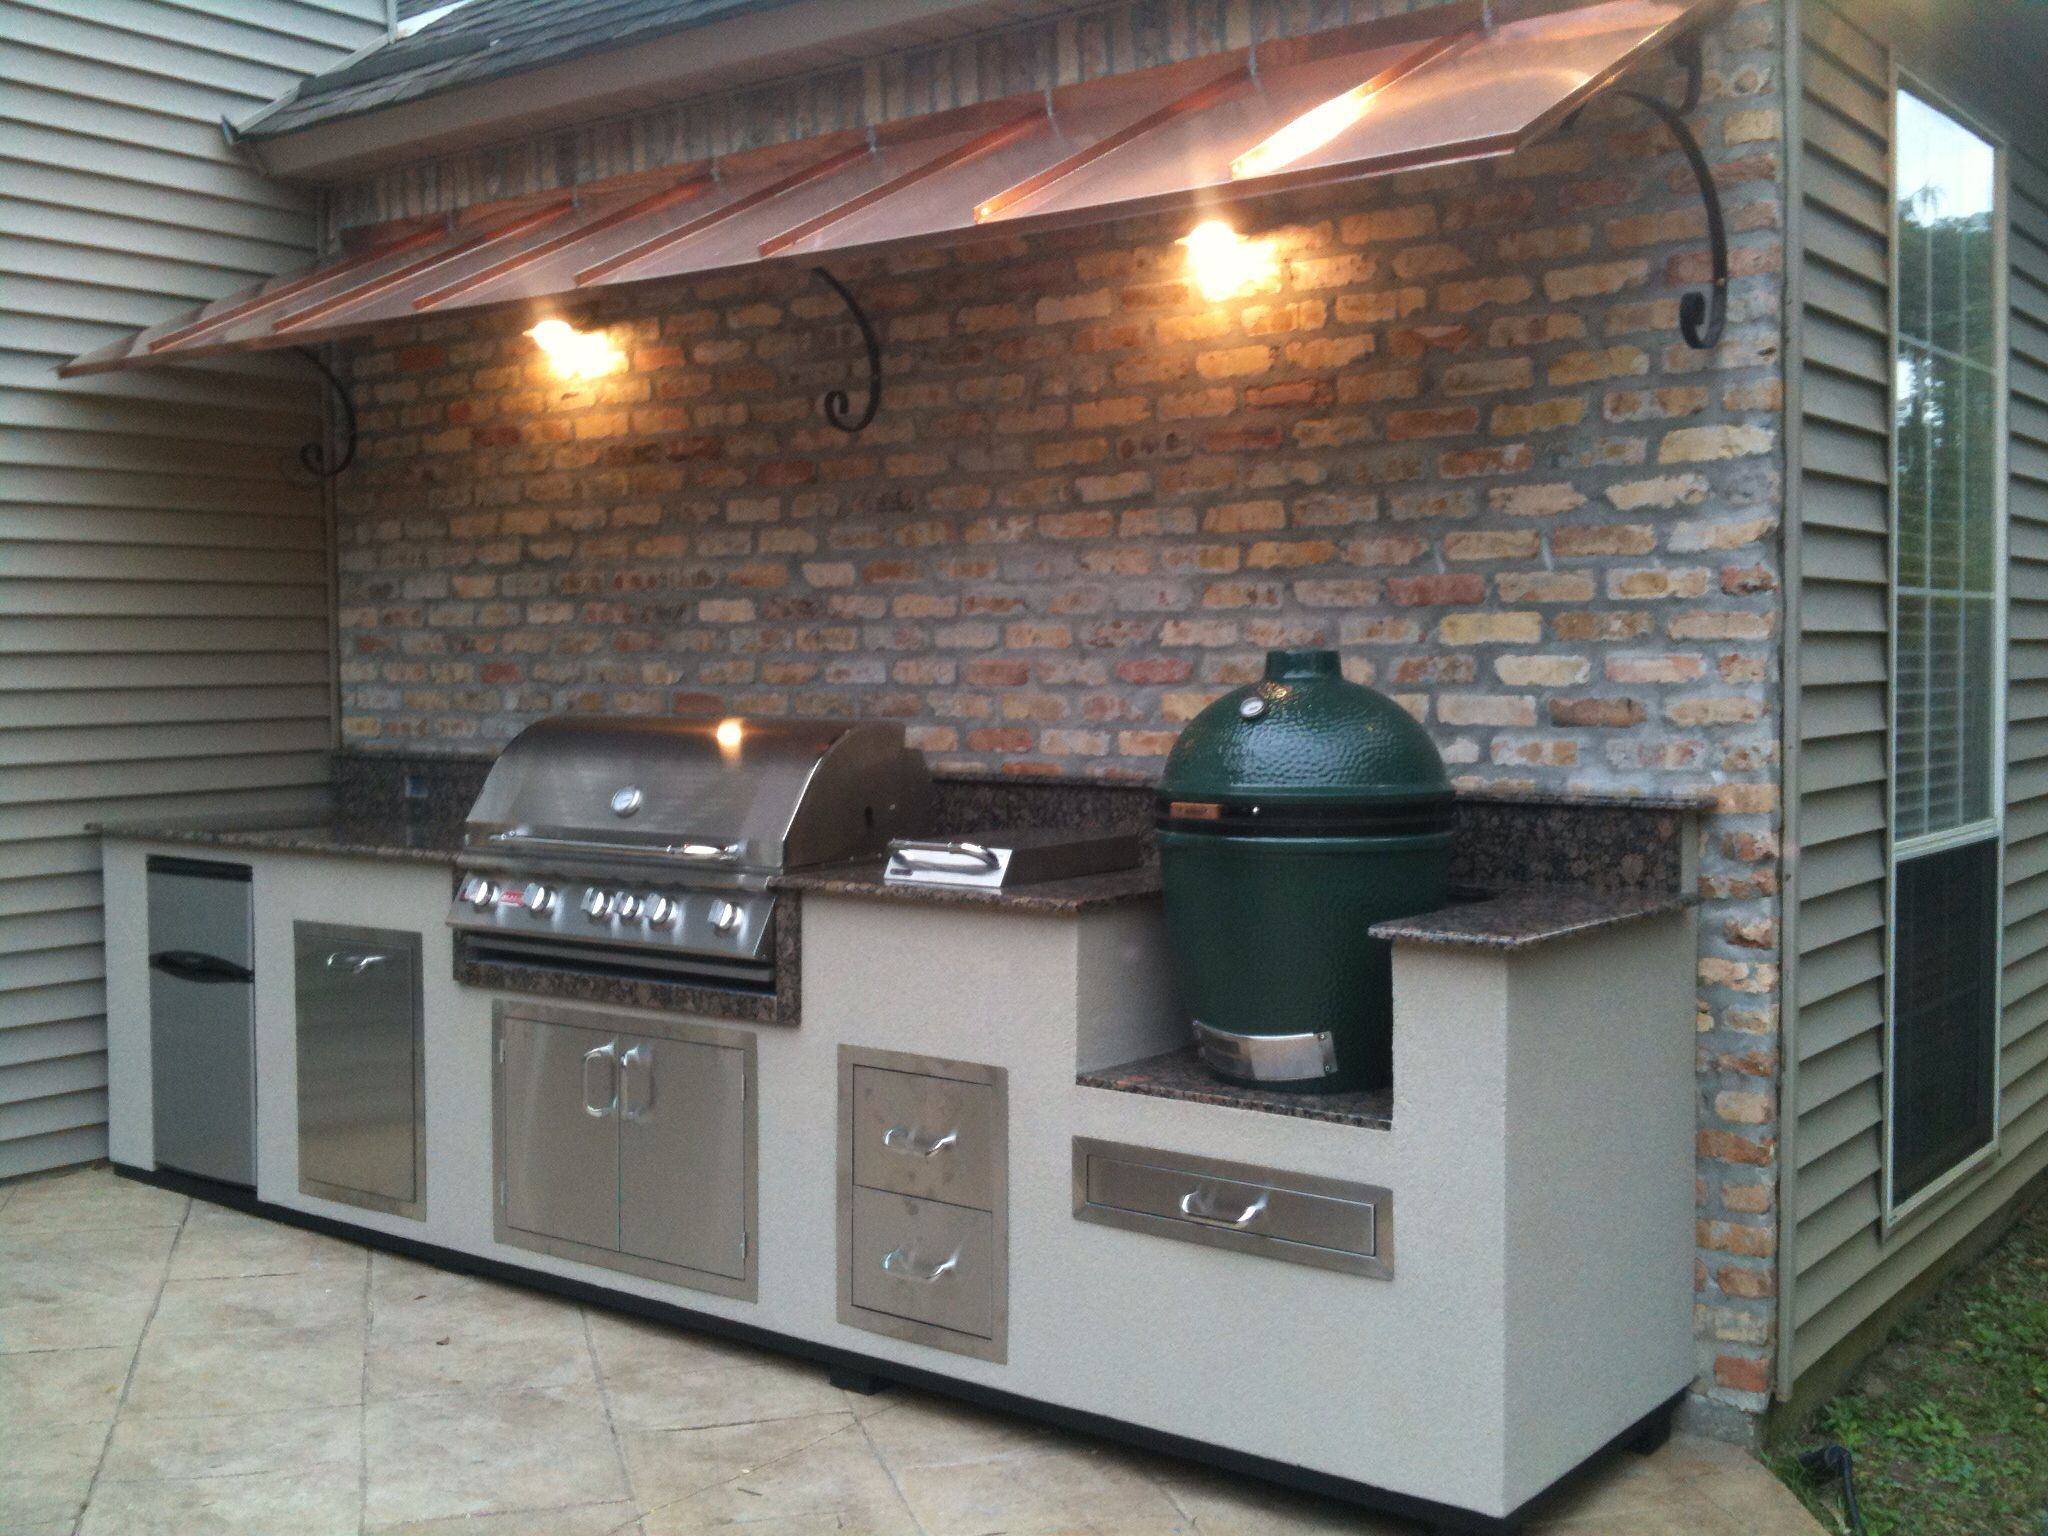 Best Photo Images And Pictures About Outdoor Kitchen Design Kitchendesign Outdoor Kitchen Design Backyard Kitchen Outdoor Kitchen